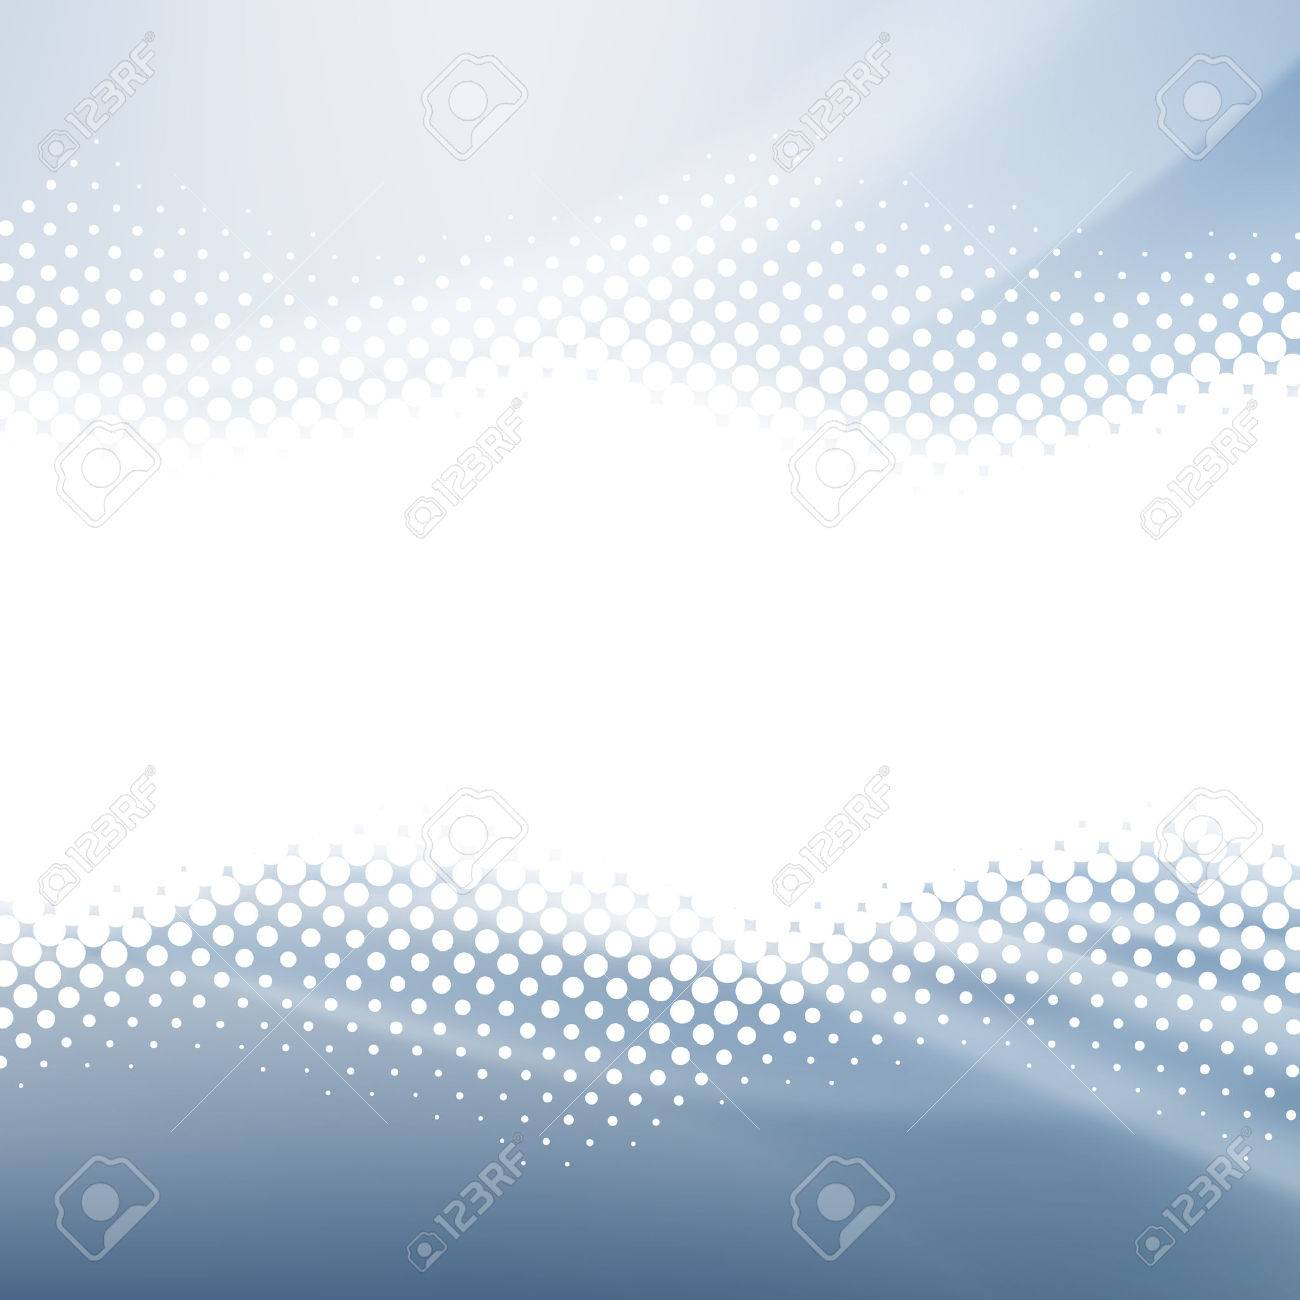 Abstract Background. White Halftone on the Blue Background. - 40685539